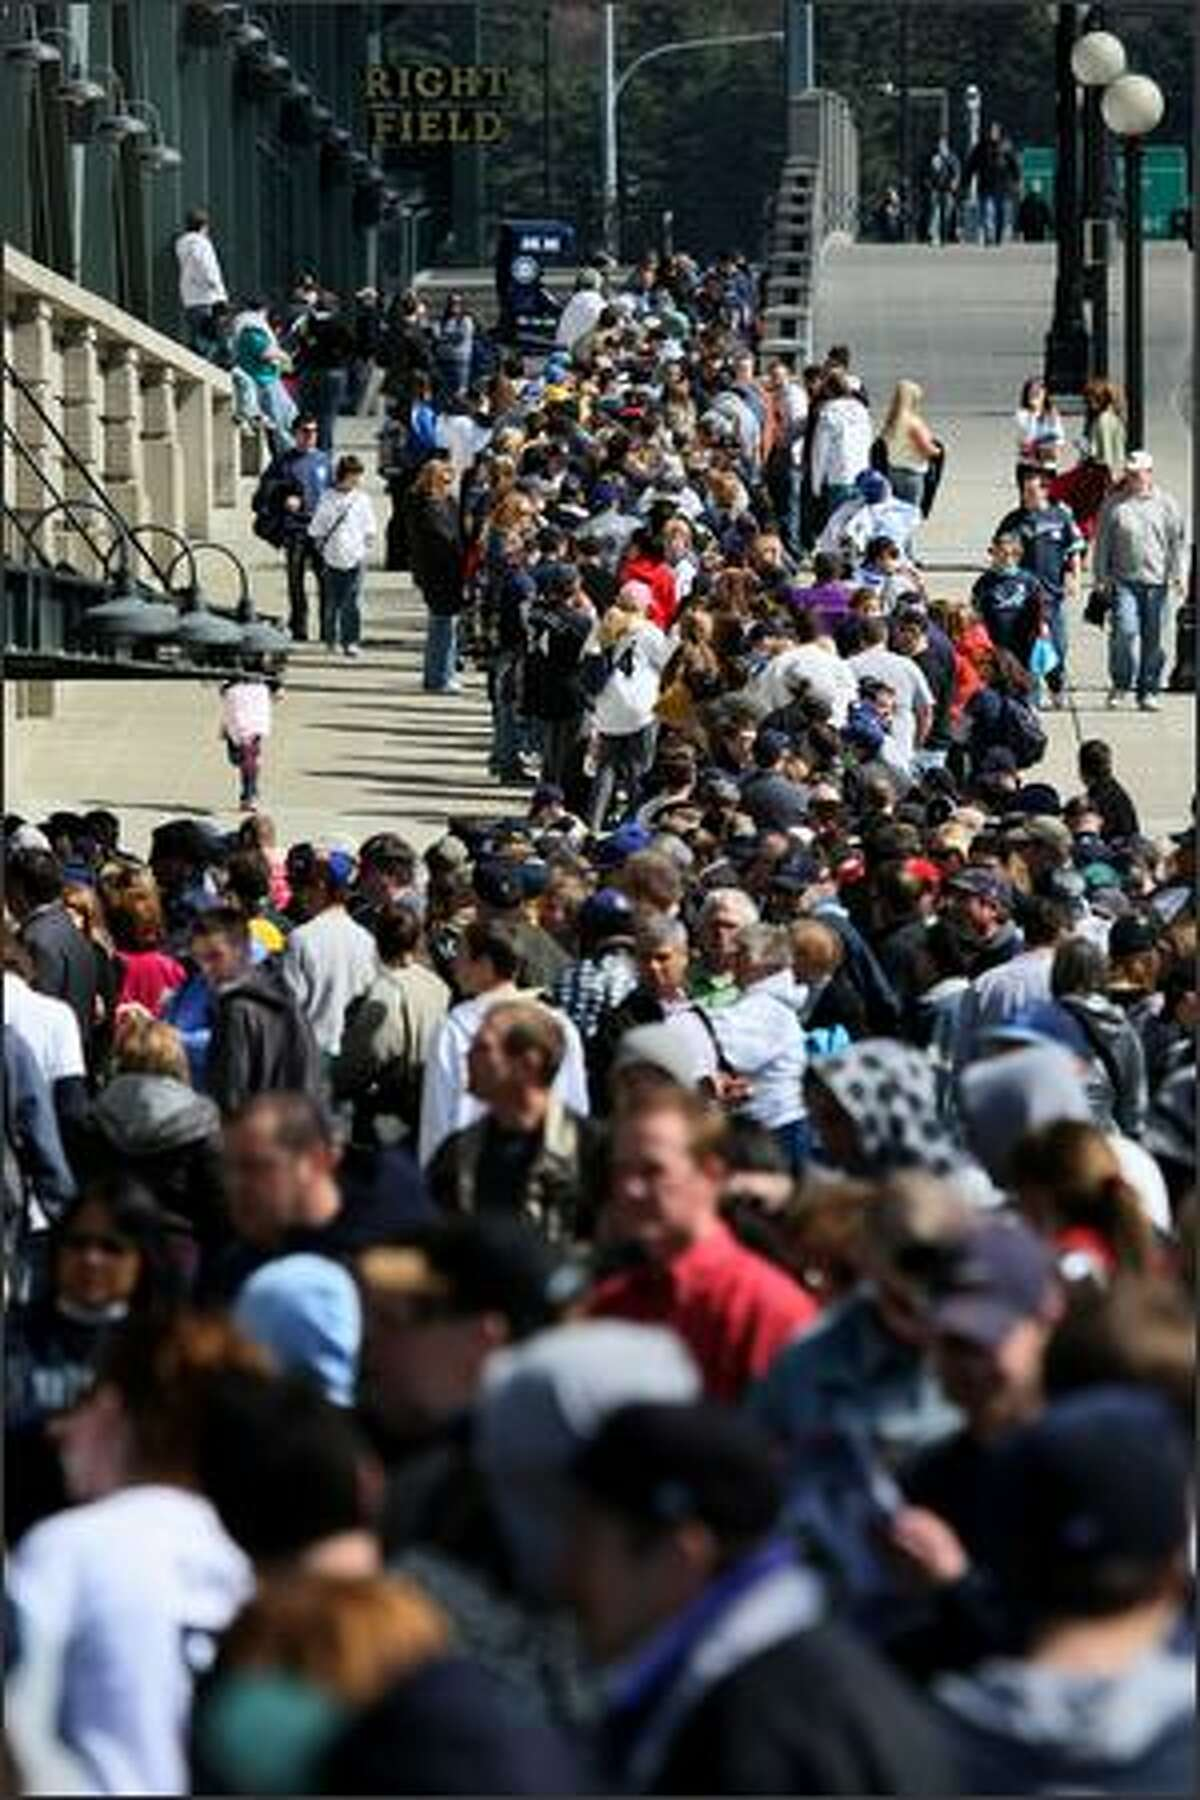 Fans line up to get into Safeco Field during the Seattle Mariners season opener at Safeco in Seattle.